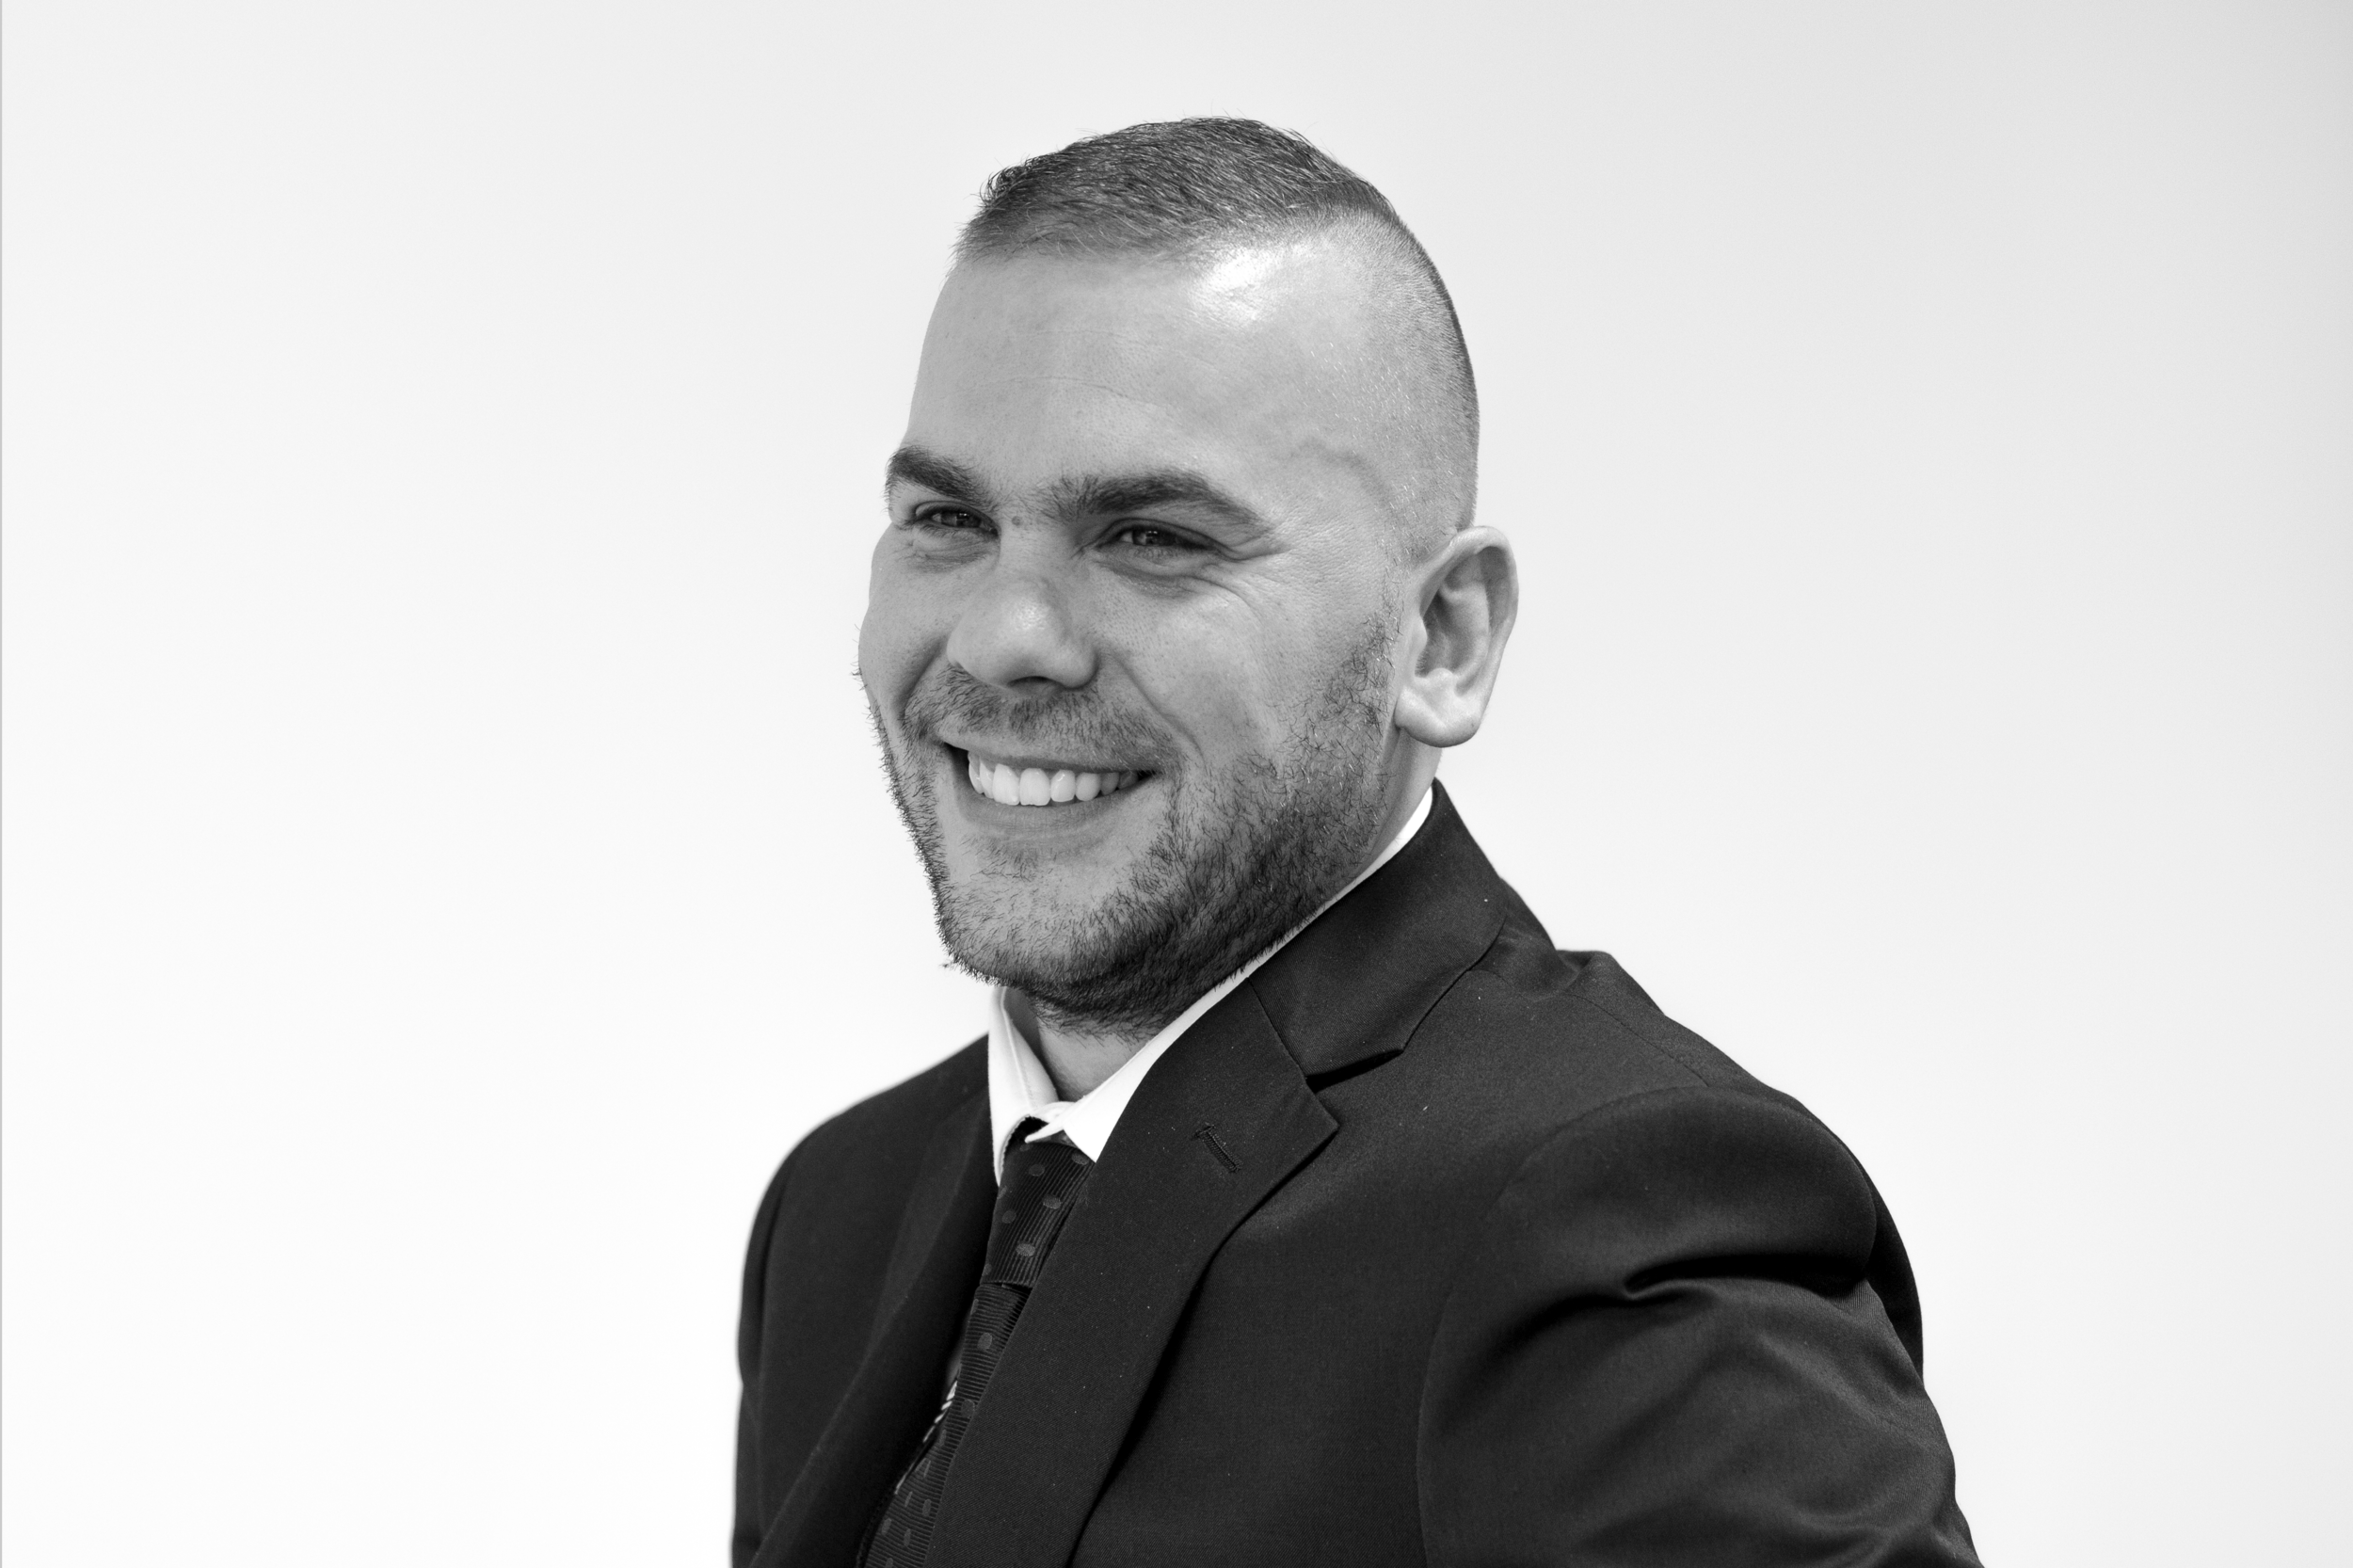 Richard Greensmith;  Asset Protection Specialist    Having joined the private security industry after a career in the military, Richard specialises in asset protection with a particular focus on complex and high risk construction projects. Richard manages a team of specialist asset protection officers and tactical patrol officers to maintain around the clock protection for his clients.  In his downtime, Richard enjoys spending time with his family, and taking his dog to the beach.